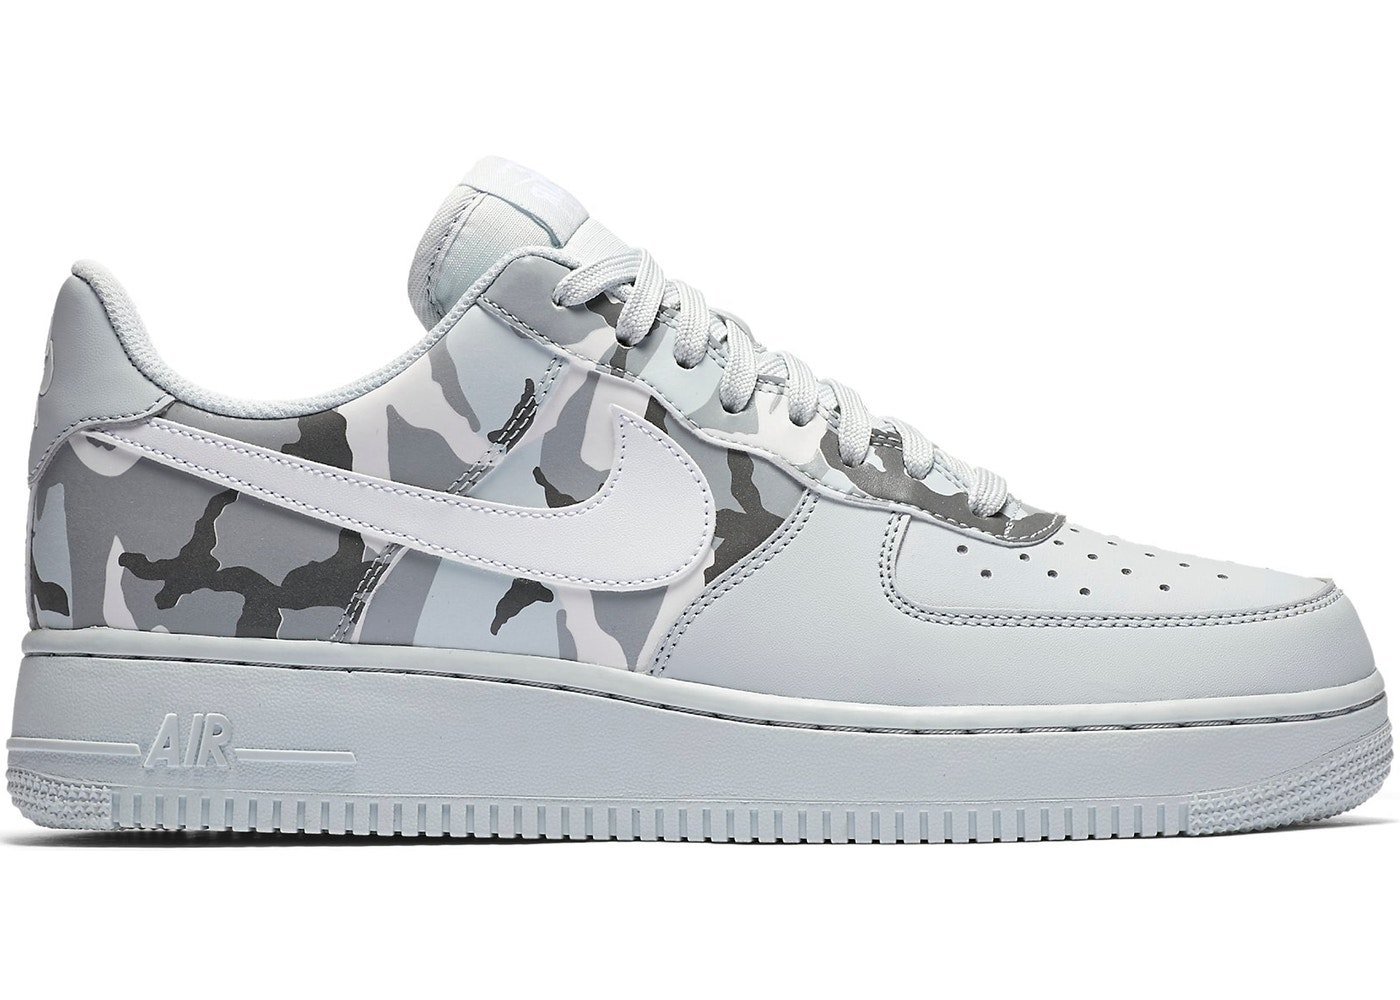 ebc75a946cf70 nike air force 1 one low jungle camo 3m reflective nz|Free delivery!